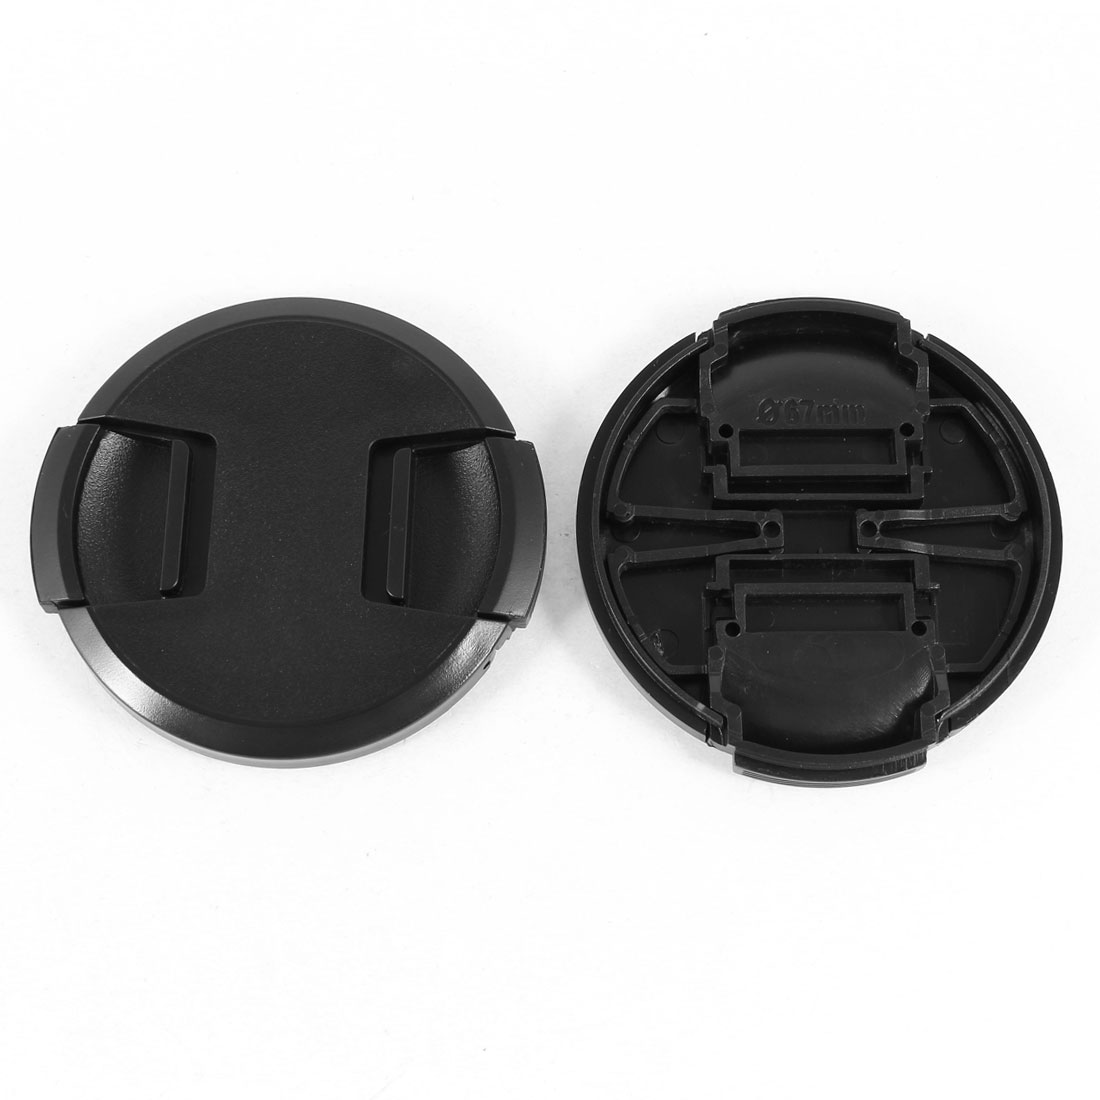 2 Pcs 67mm Plastic Clip On Front Lens Cap Cover Black w String